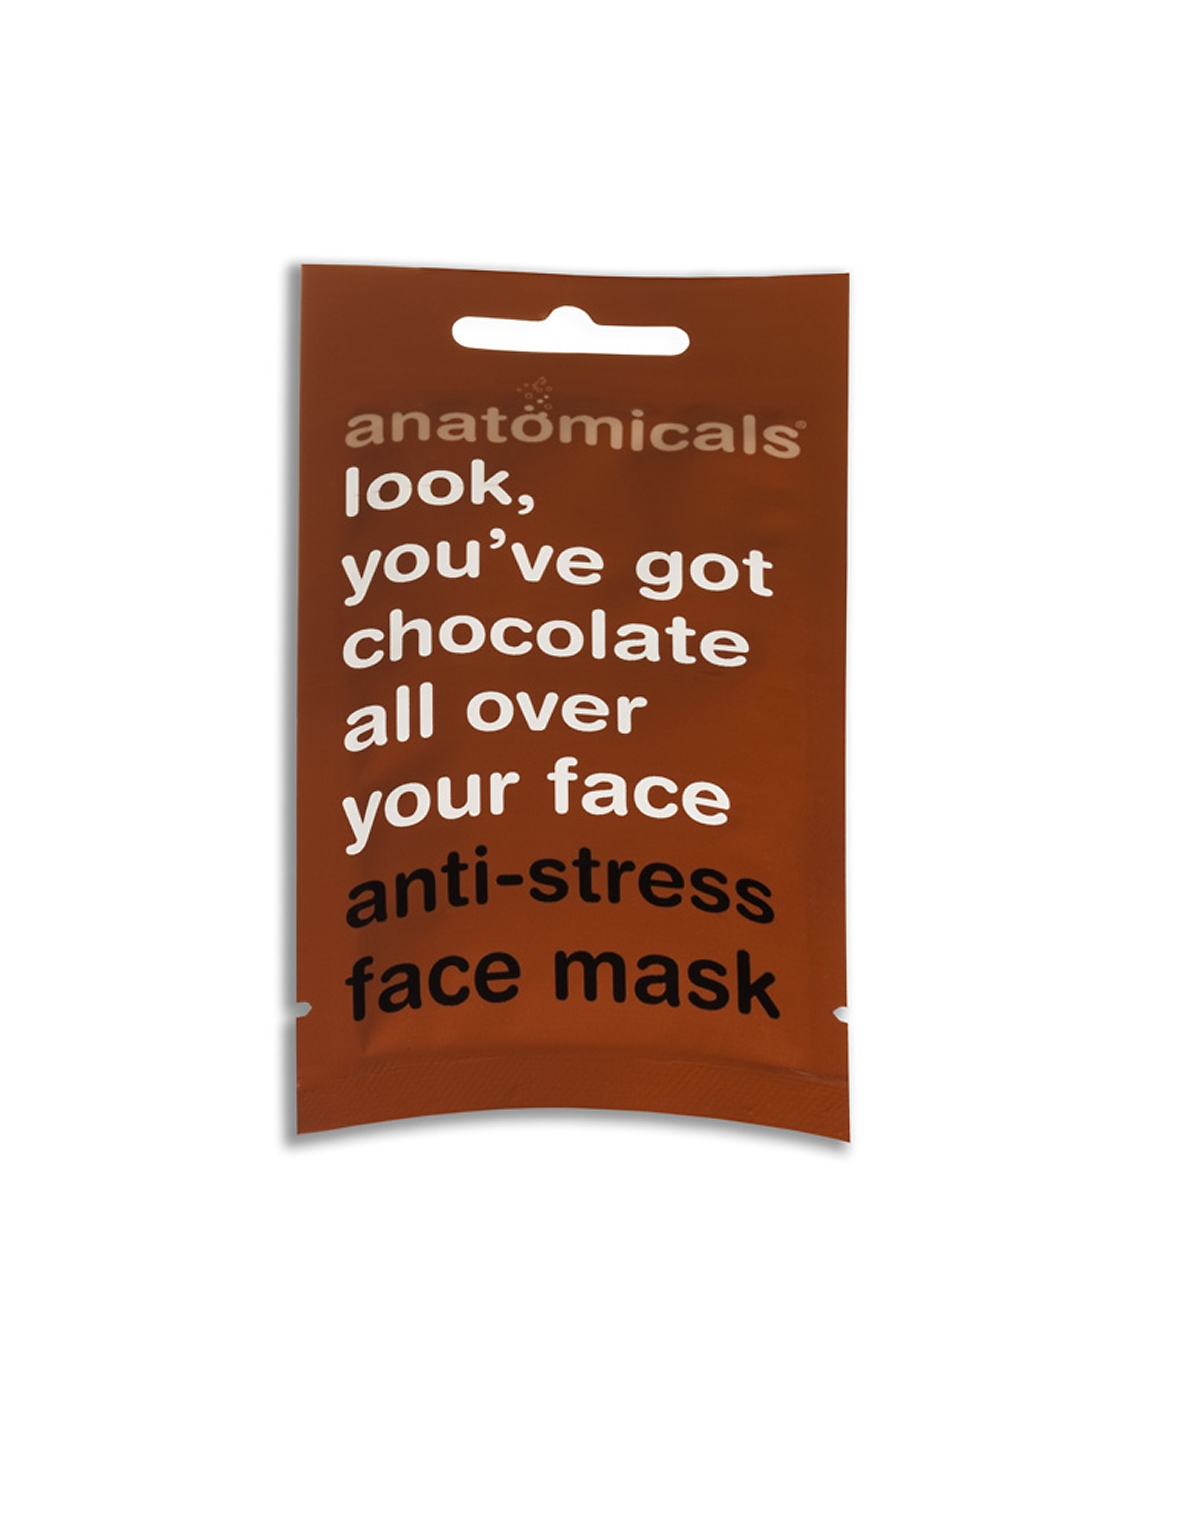 anatomicals anti-stress face mask.JPG